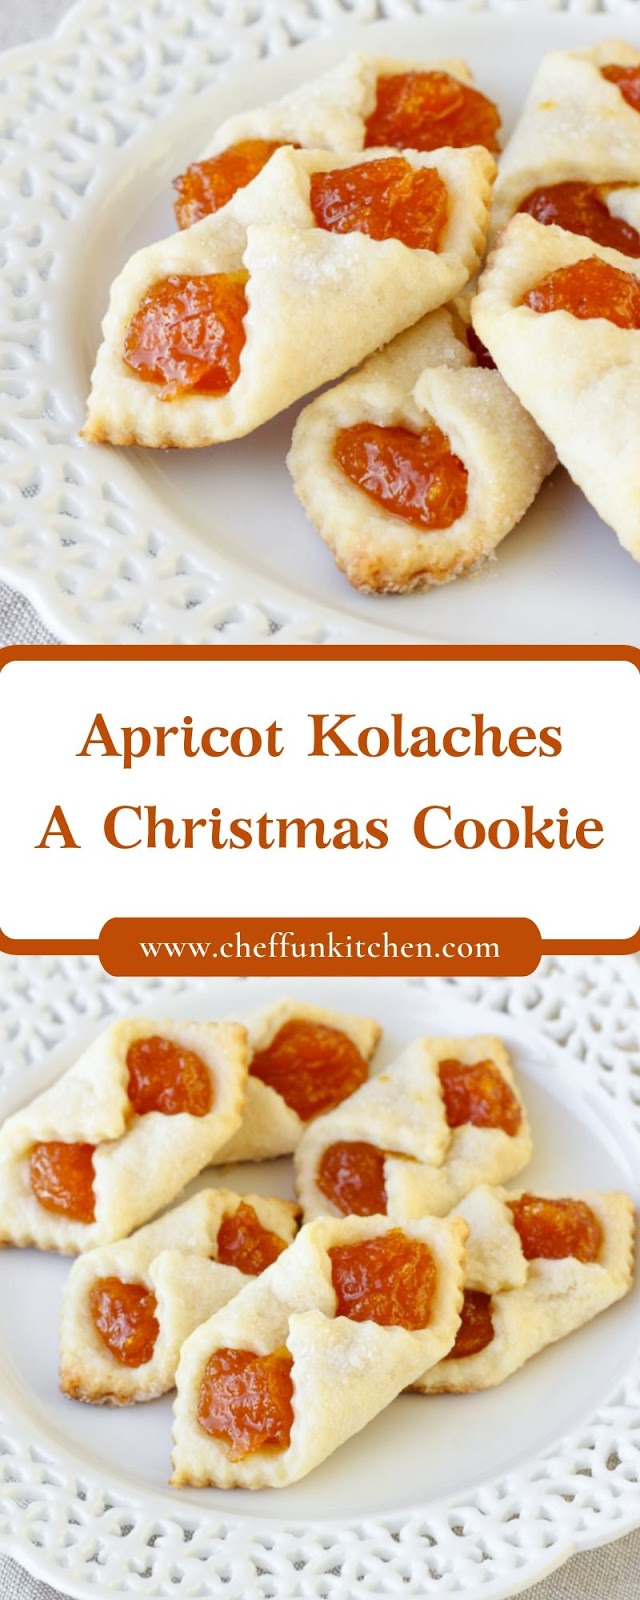 Apricot Kolaches – A Christmas Cookie